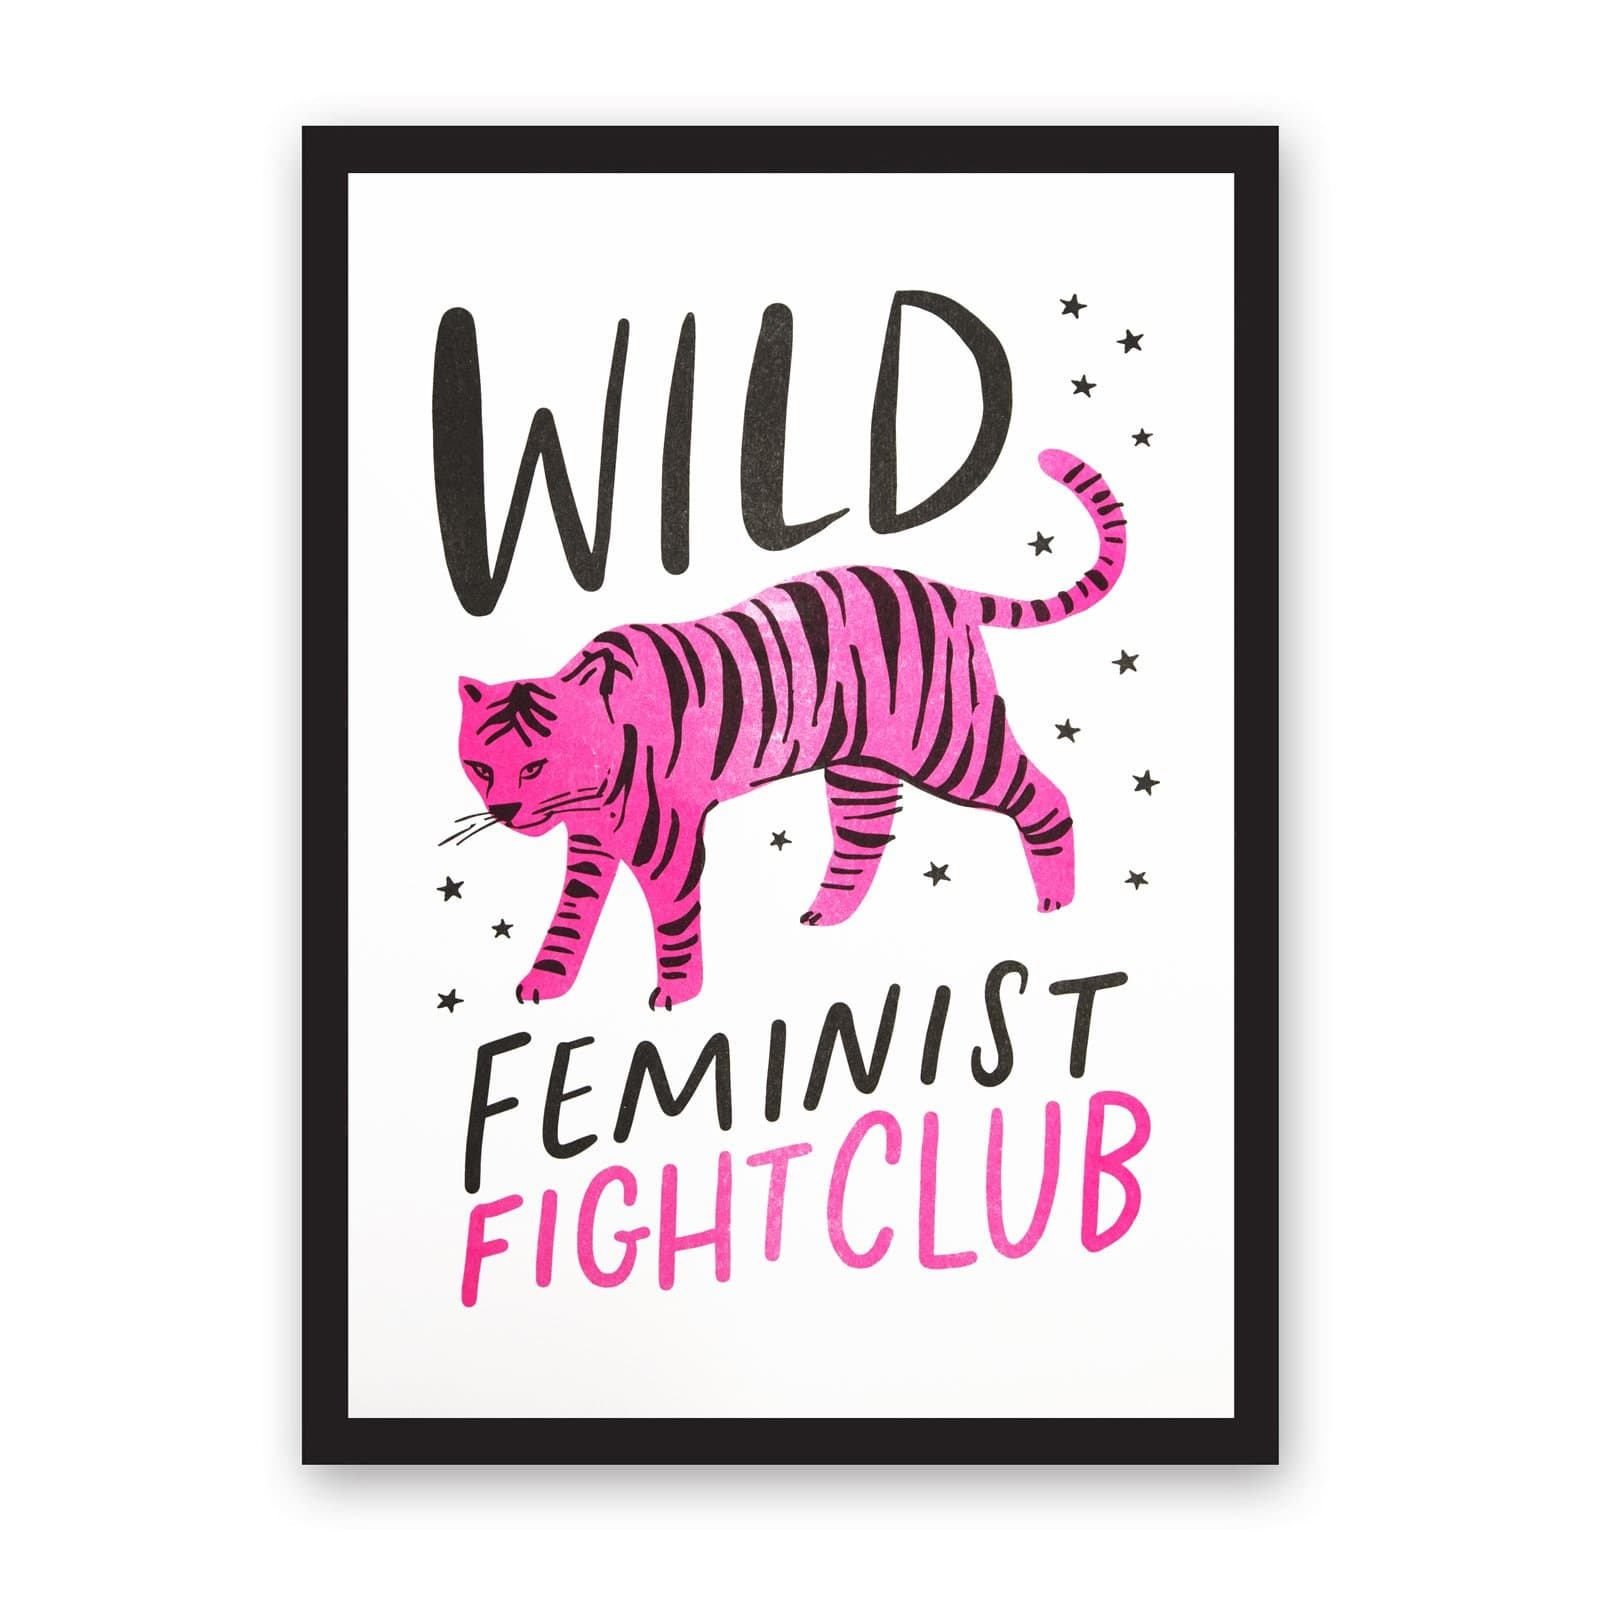 White art print with pink and black tiger illustration and feminist quote in black and pink